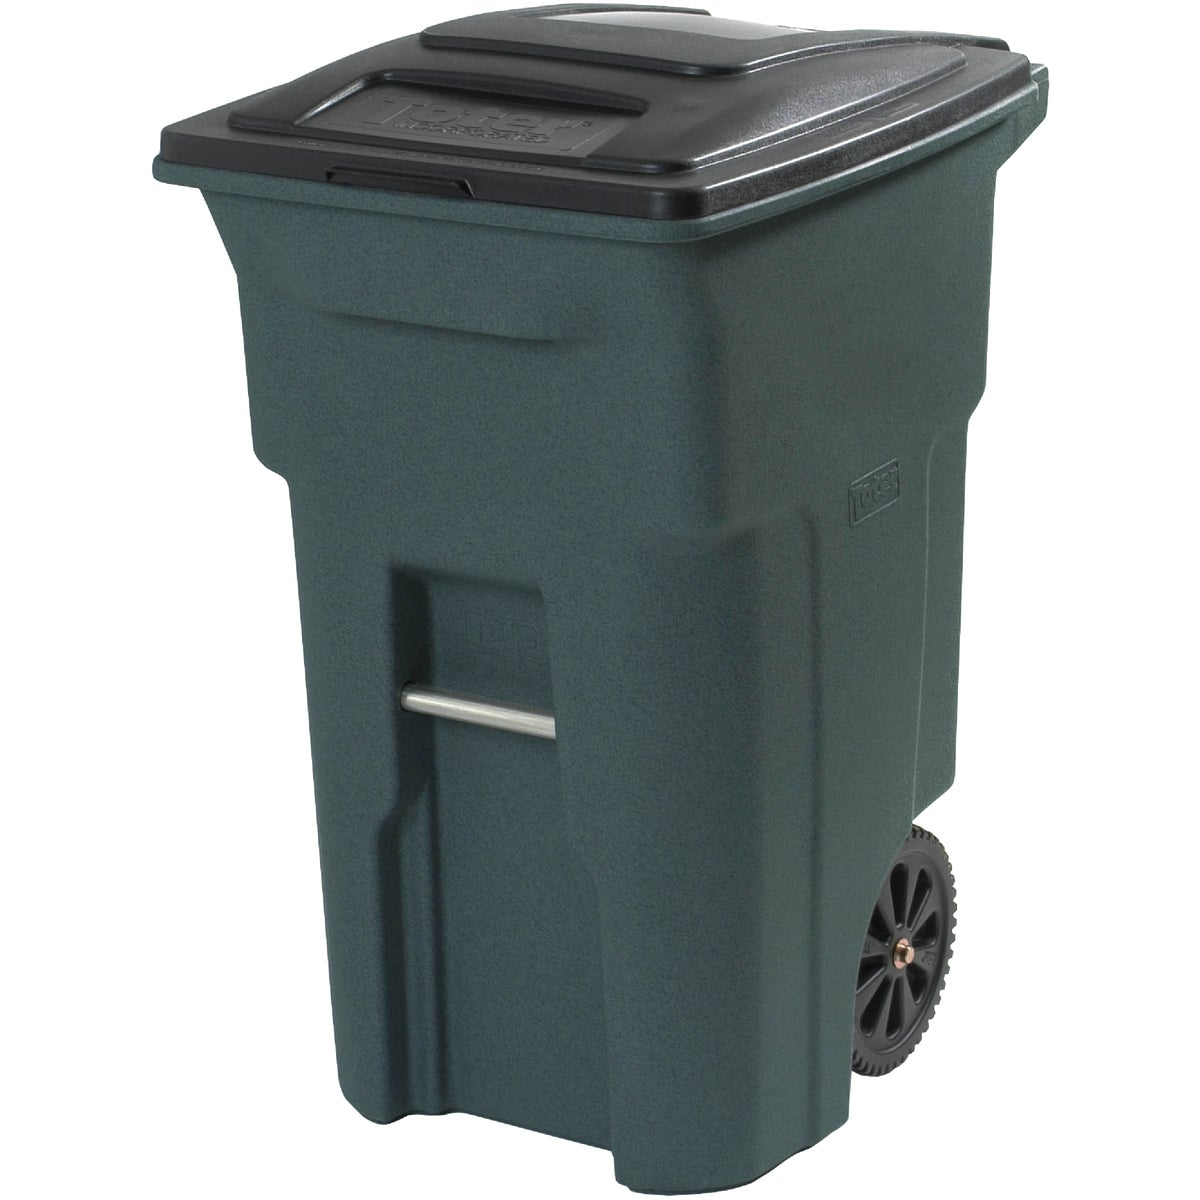 64GAL 2-WHEEL TRASH CAN - 025564-D1GRS by Toter